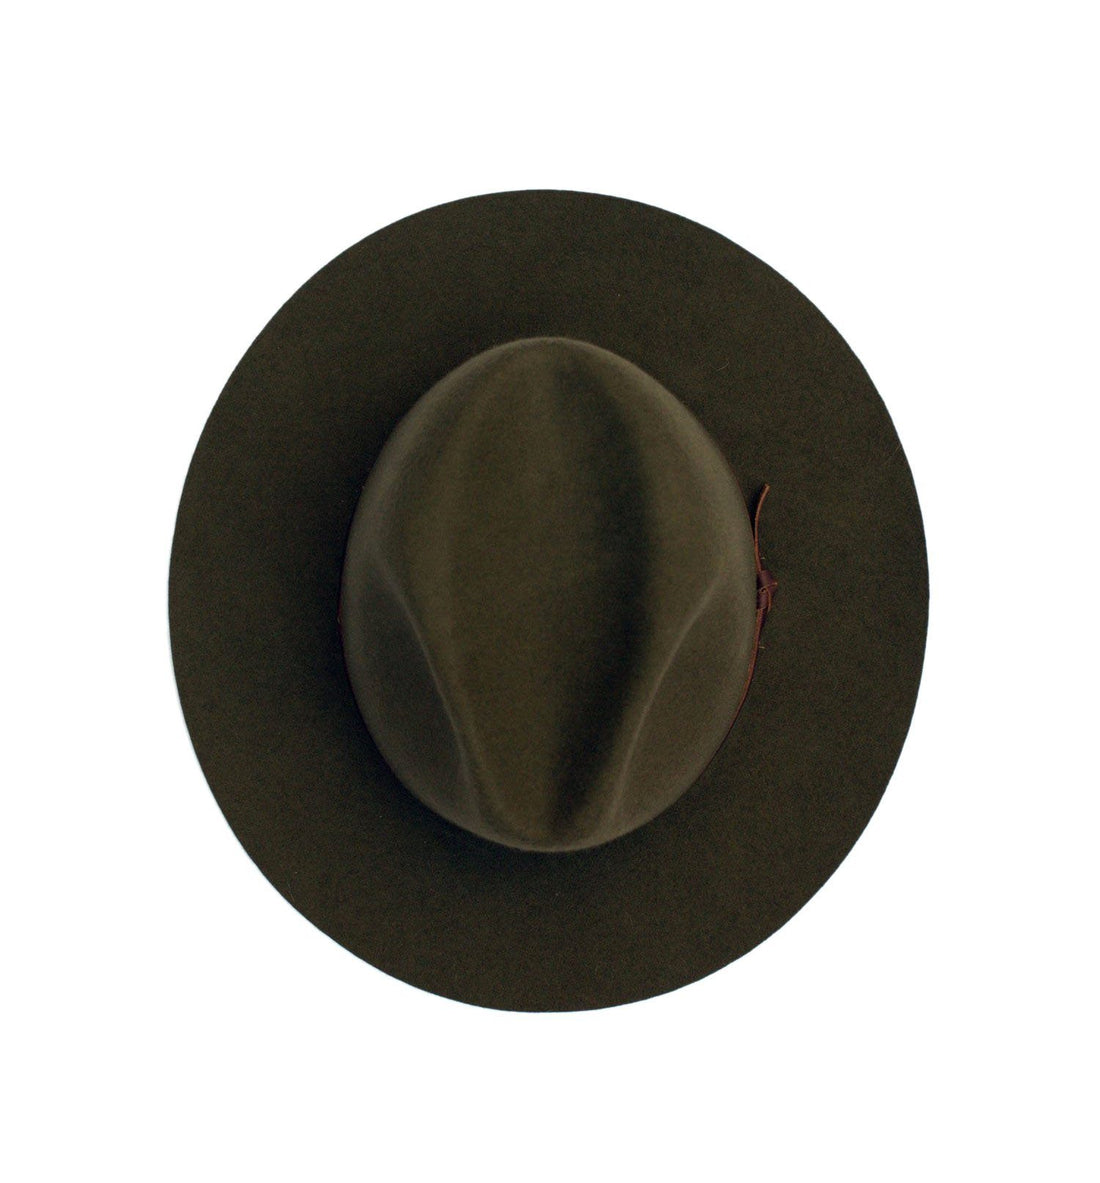 Yellow 108 Paul Fedora - Headwear - Iron and Resin